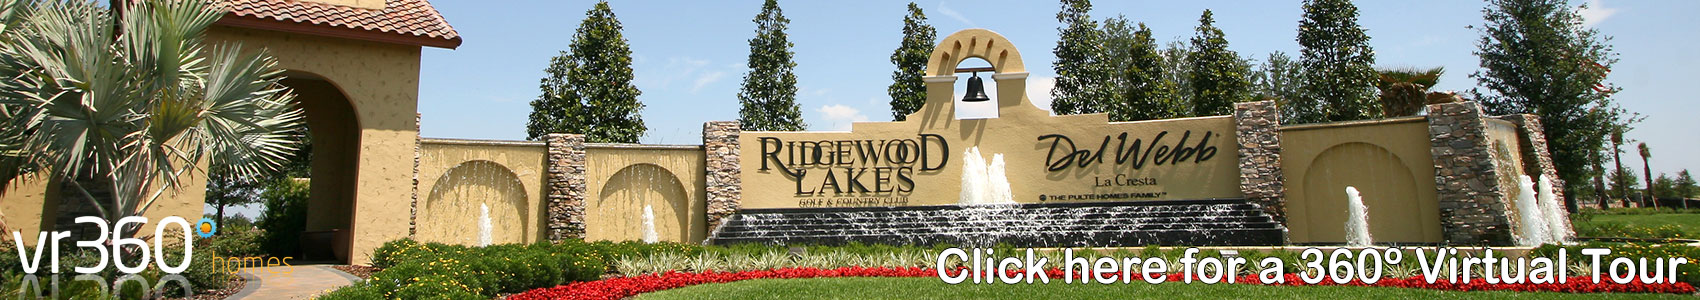 Ridgewood Lakes Vacation Rental Villas in Orlando, Florida